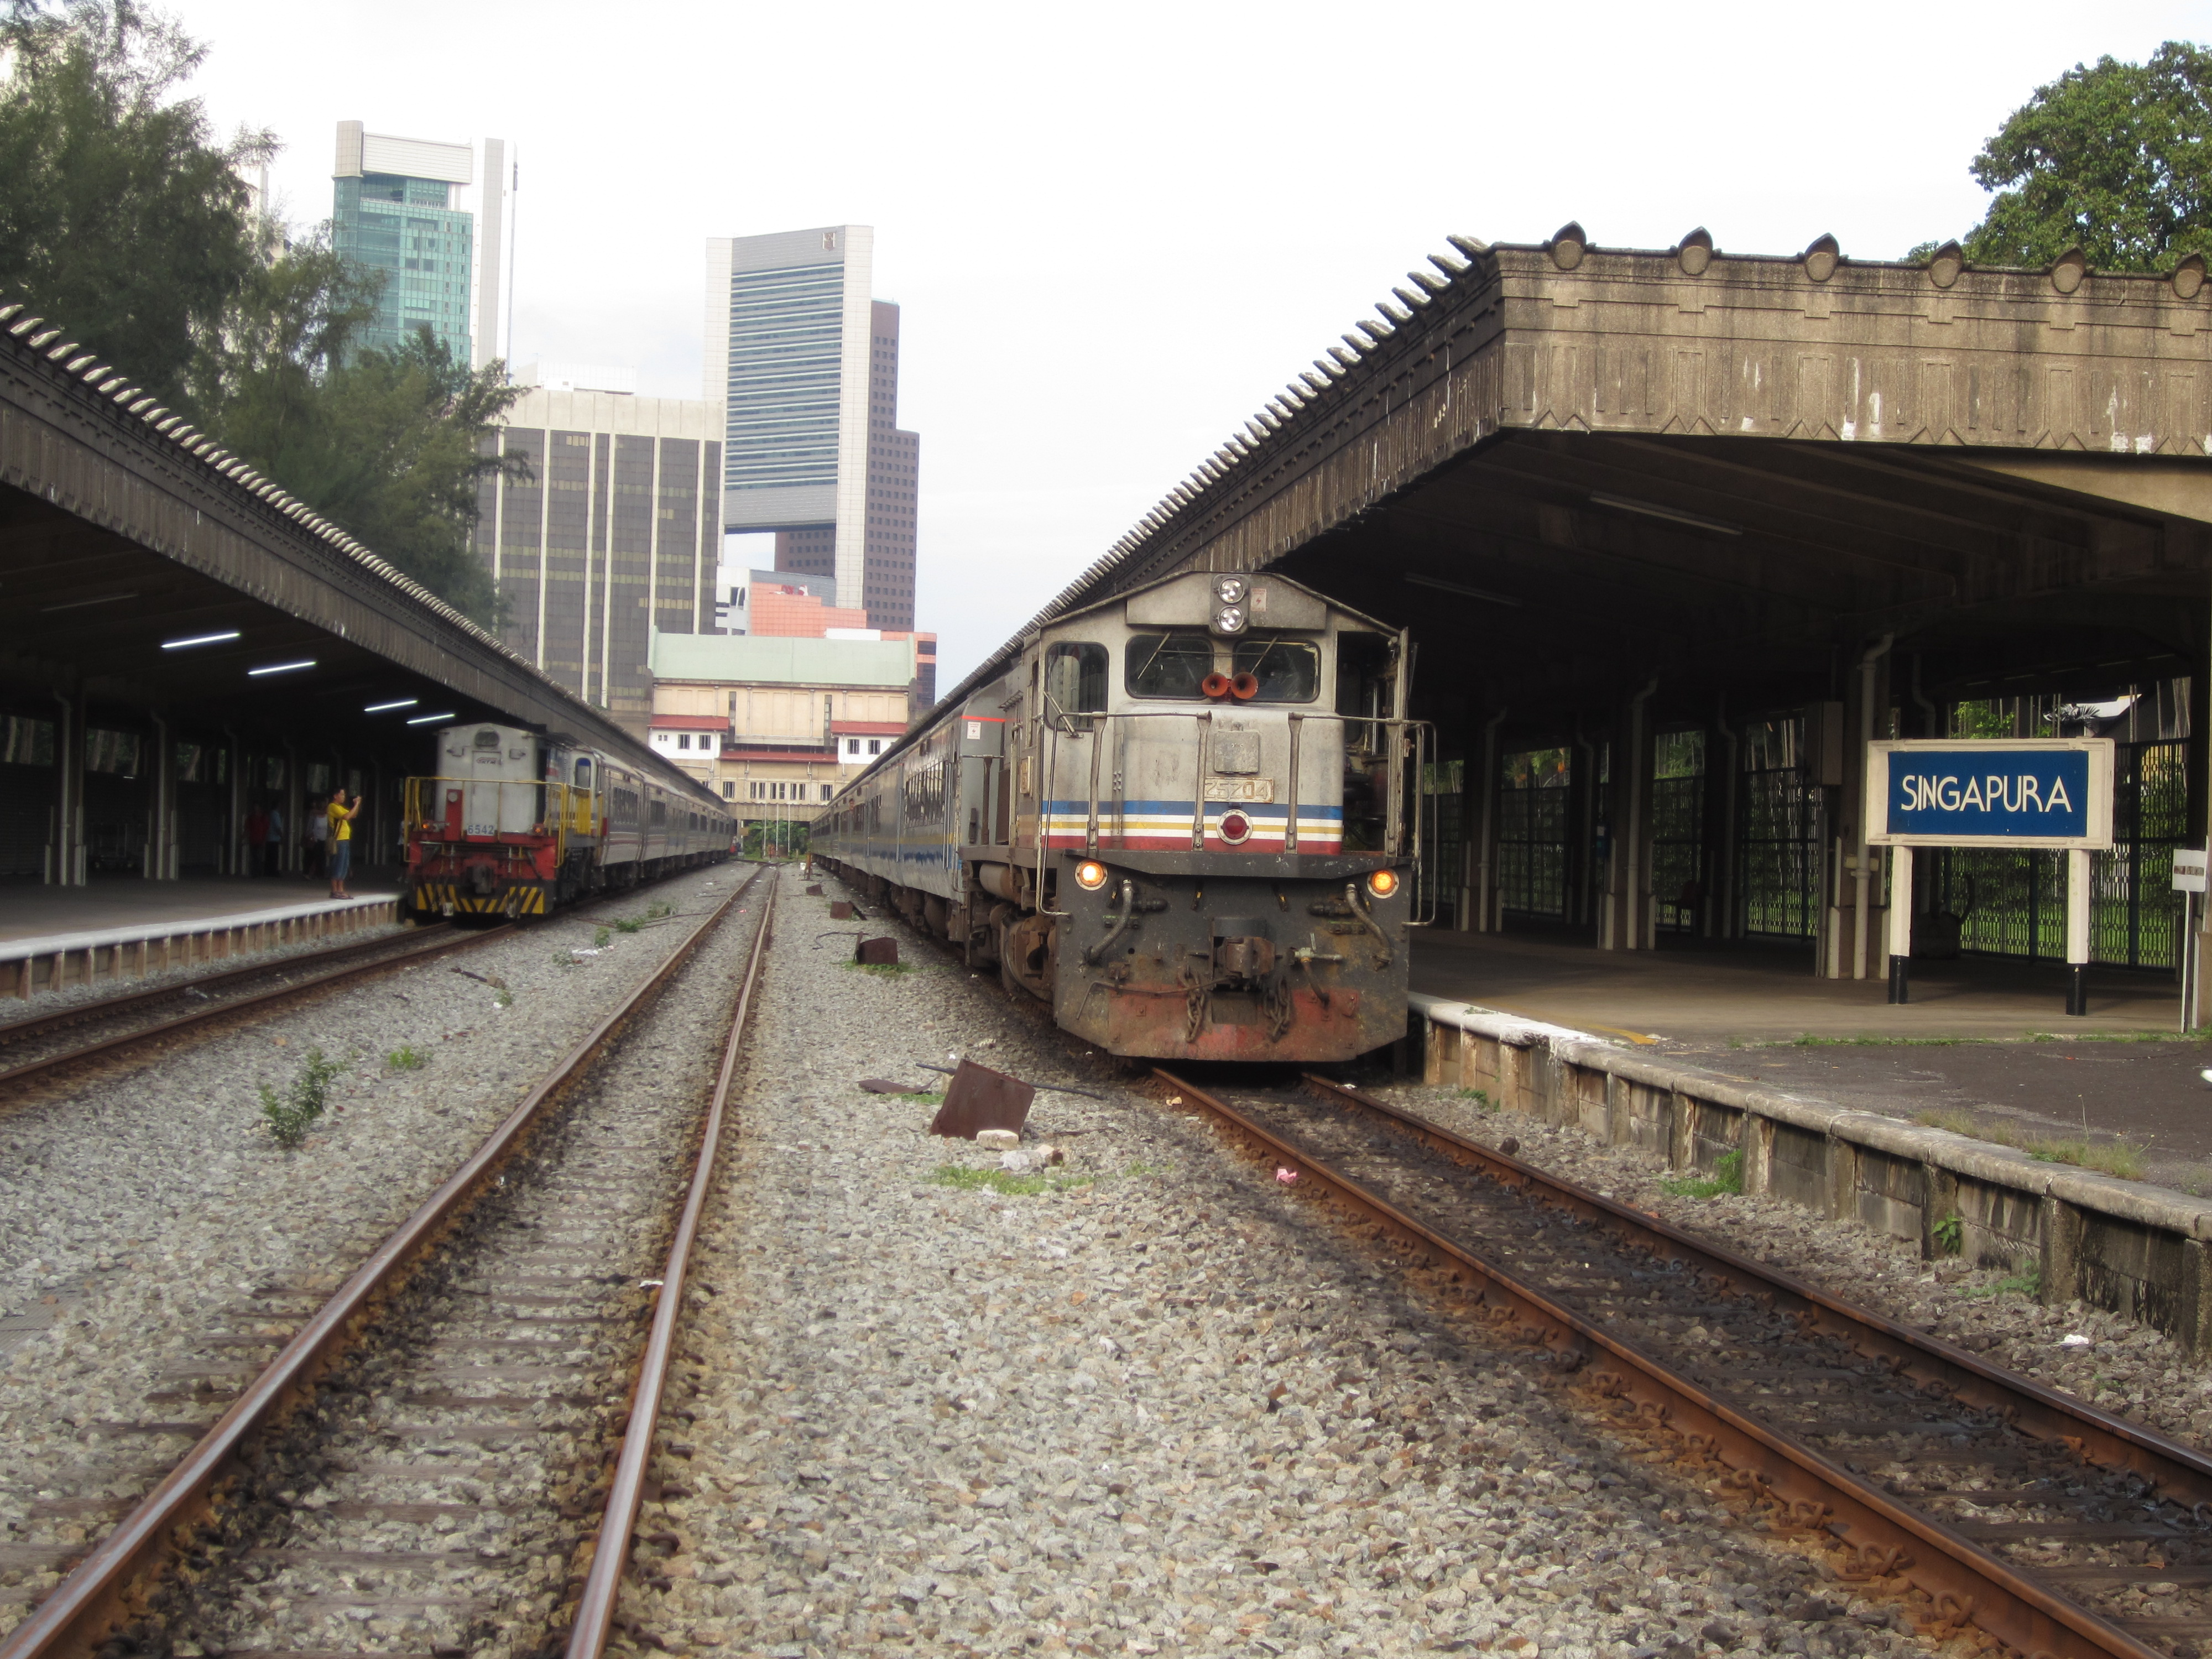 File:Tanjong Pagar Railway Station Singapore - showing Singapura.